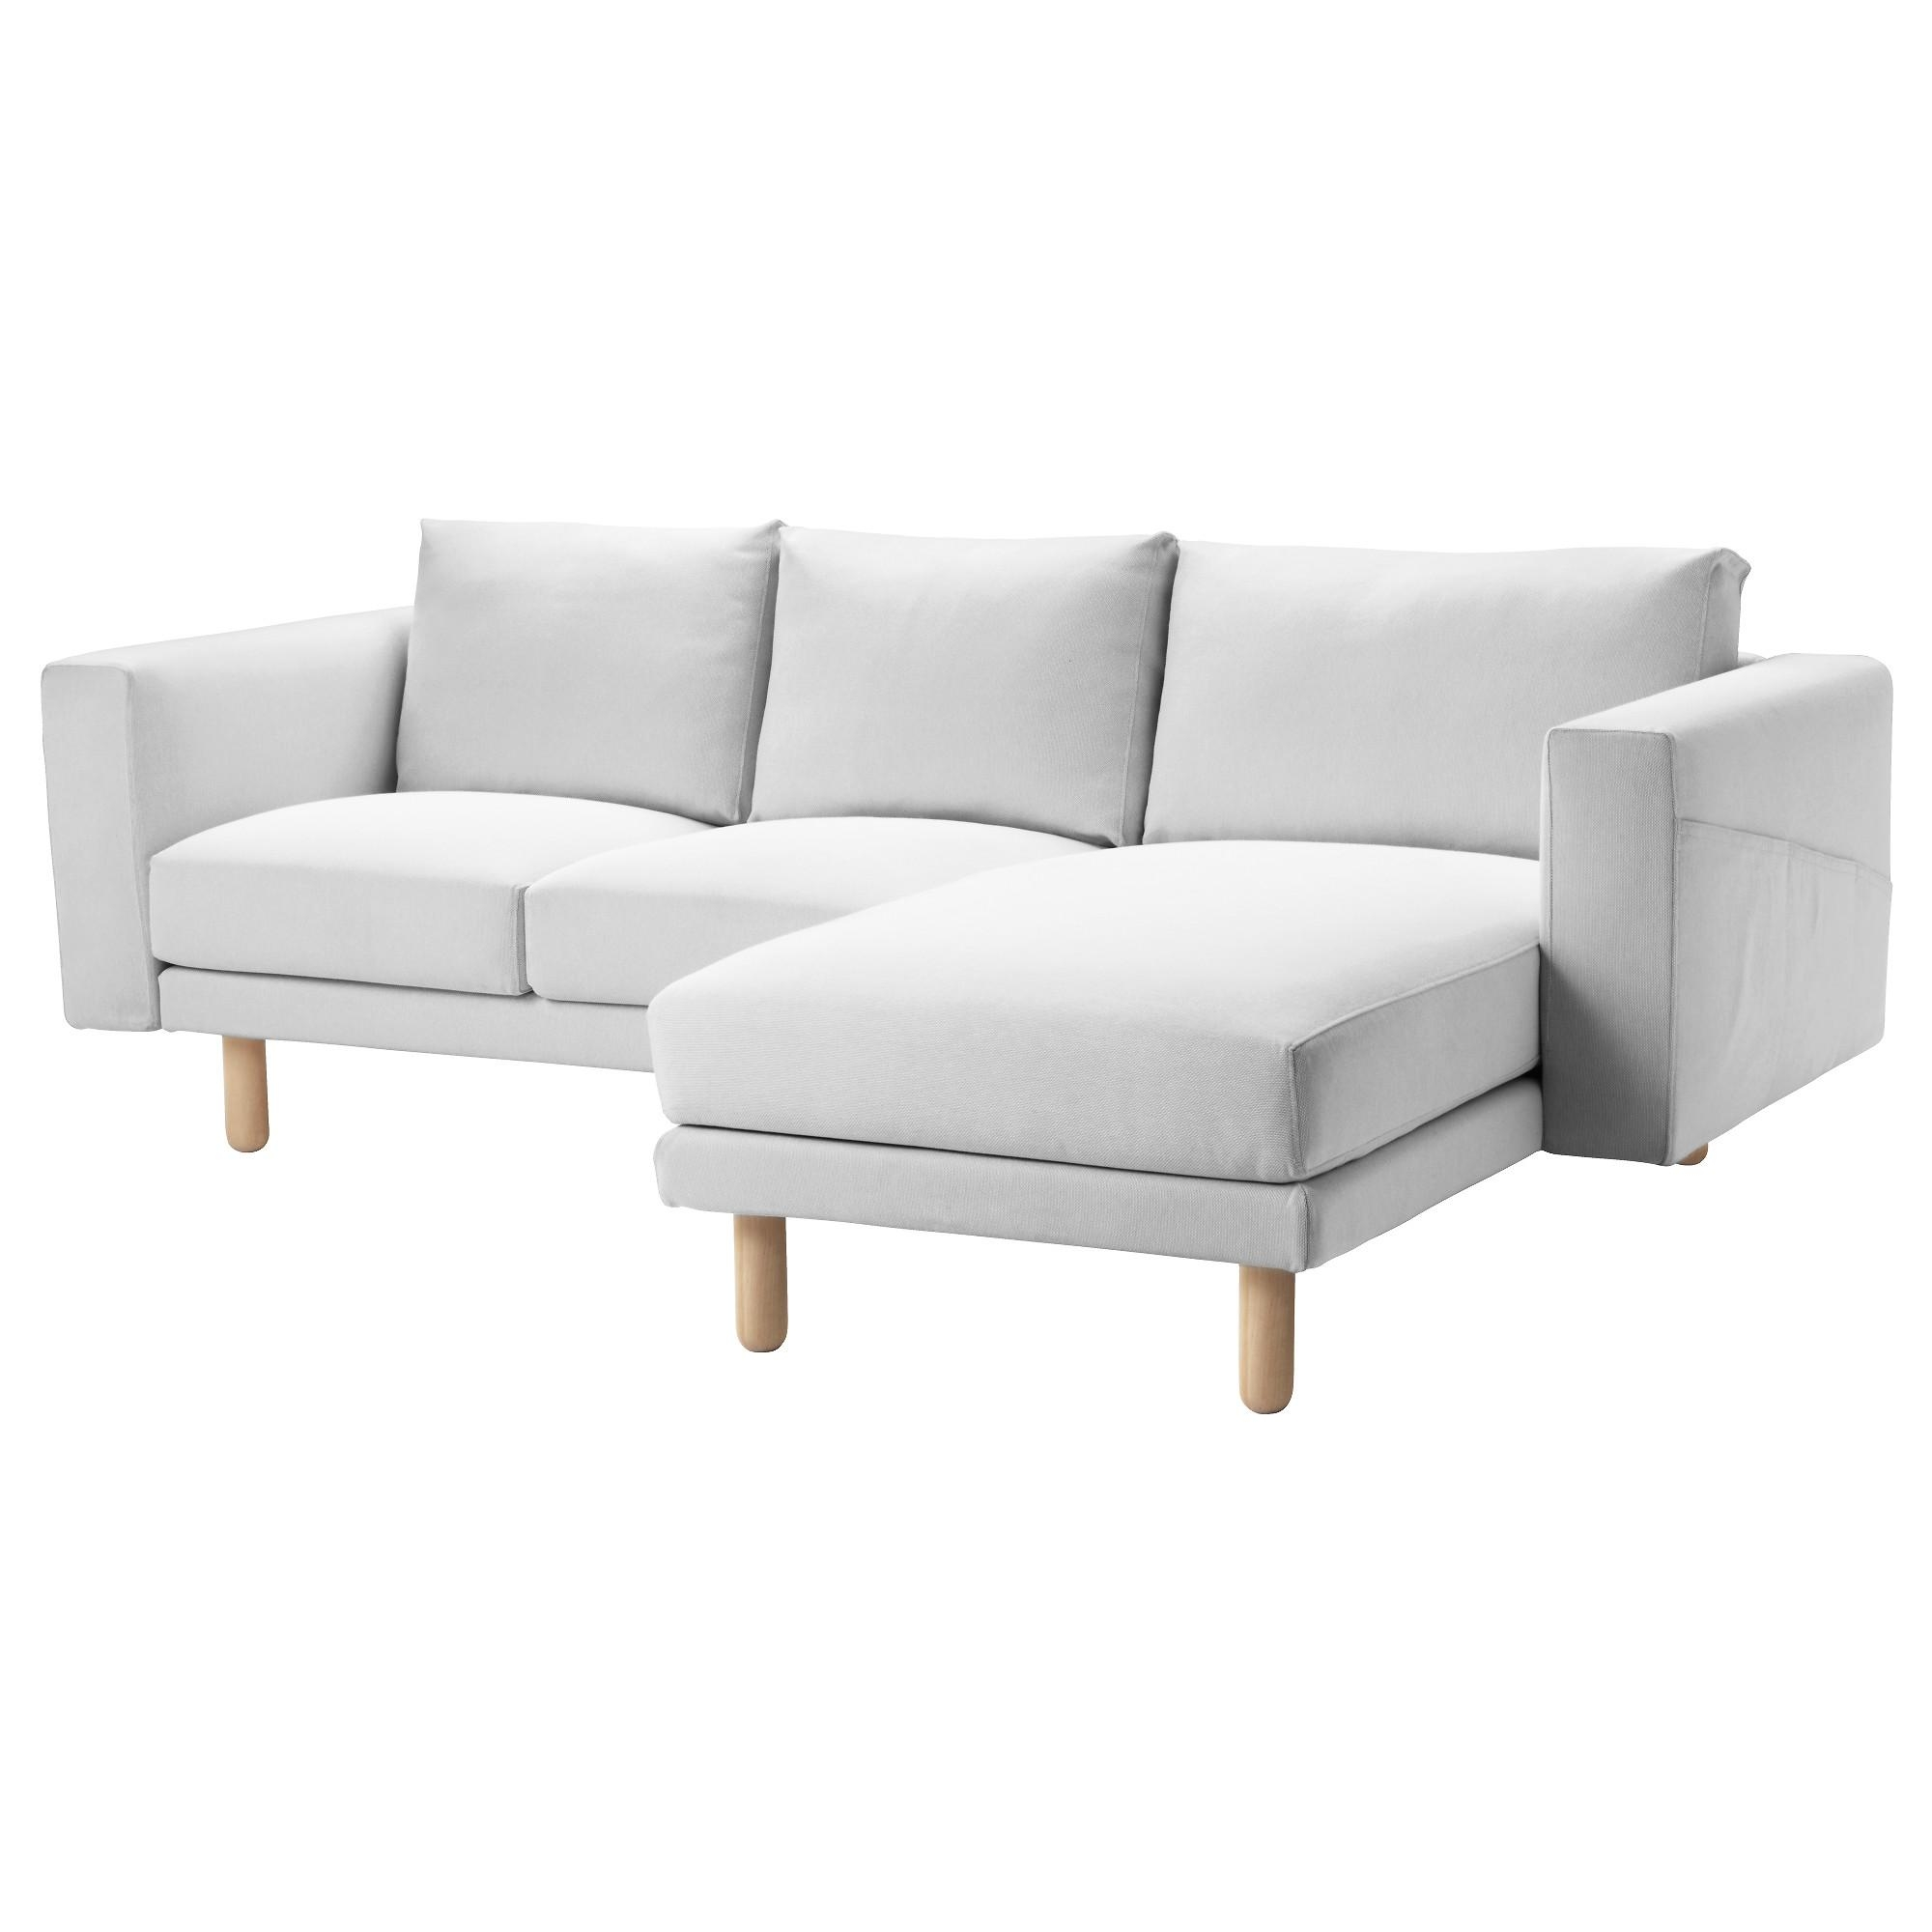 Norsborg 3 Seat Sofa With Chaise Longue/finnsta White/birch – Ikea With Ikea Chaise Lounge Sofa (View 11 of 20)